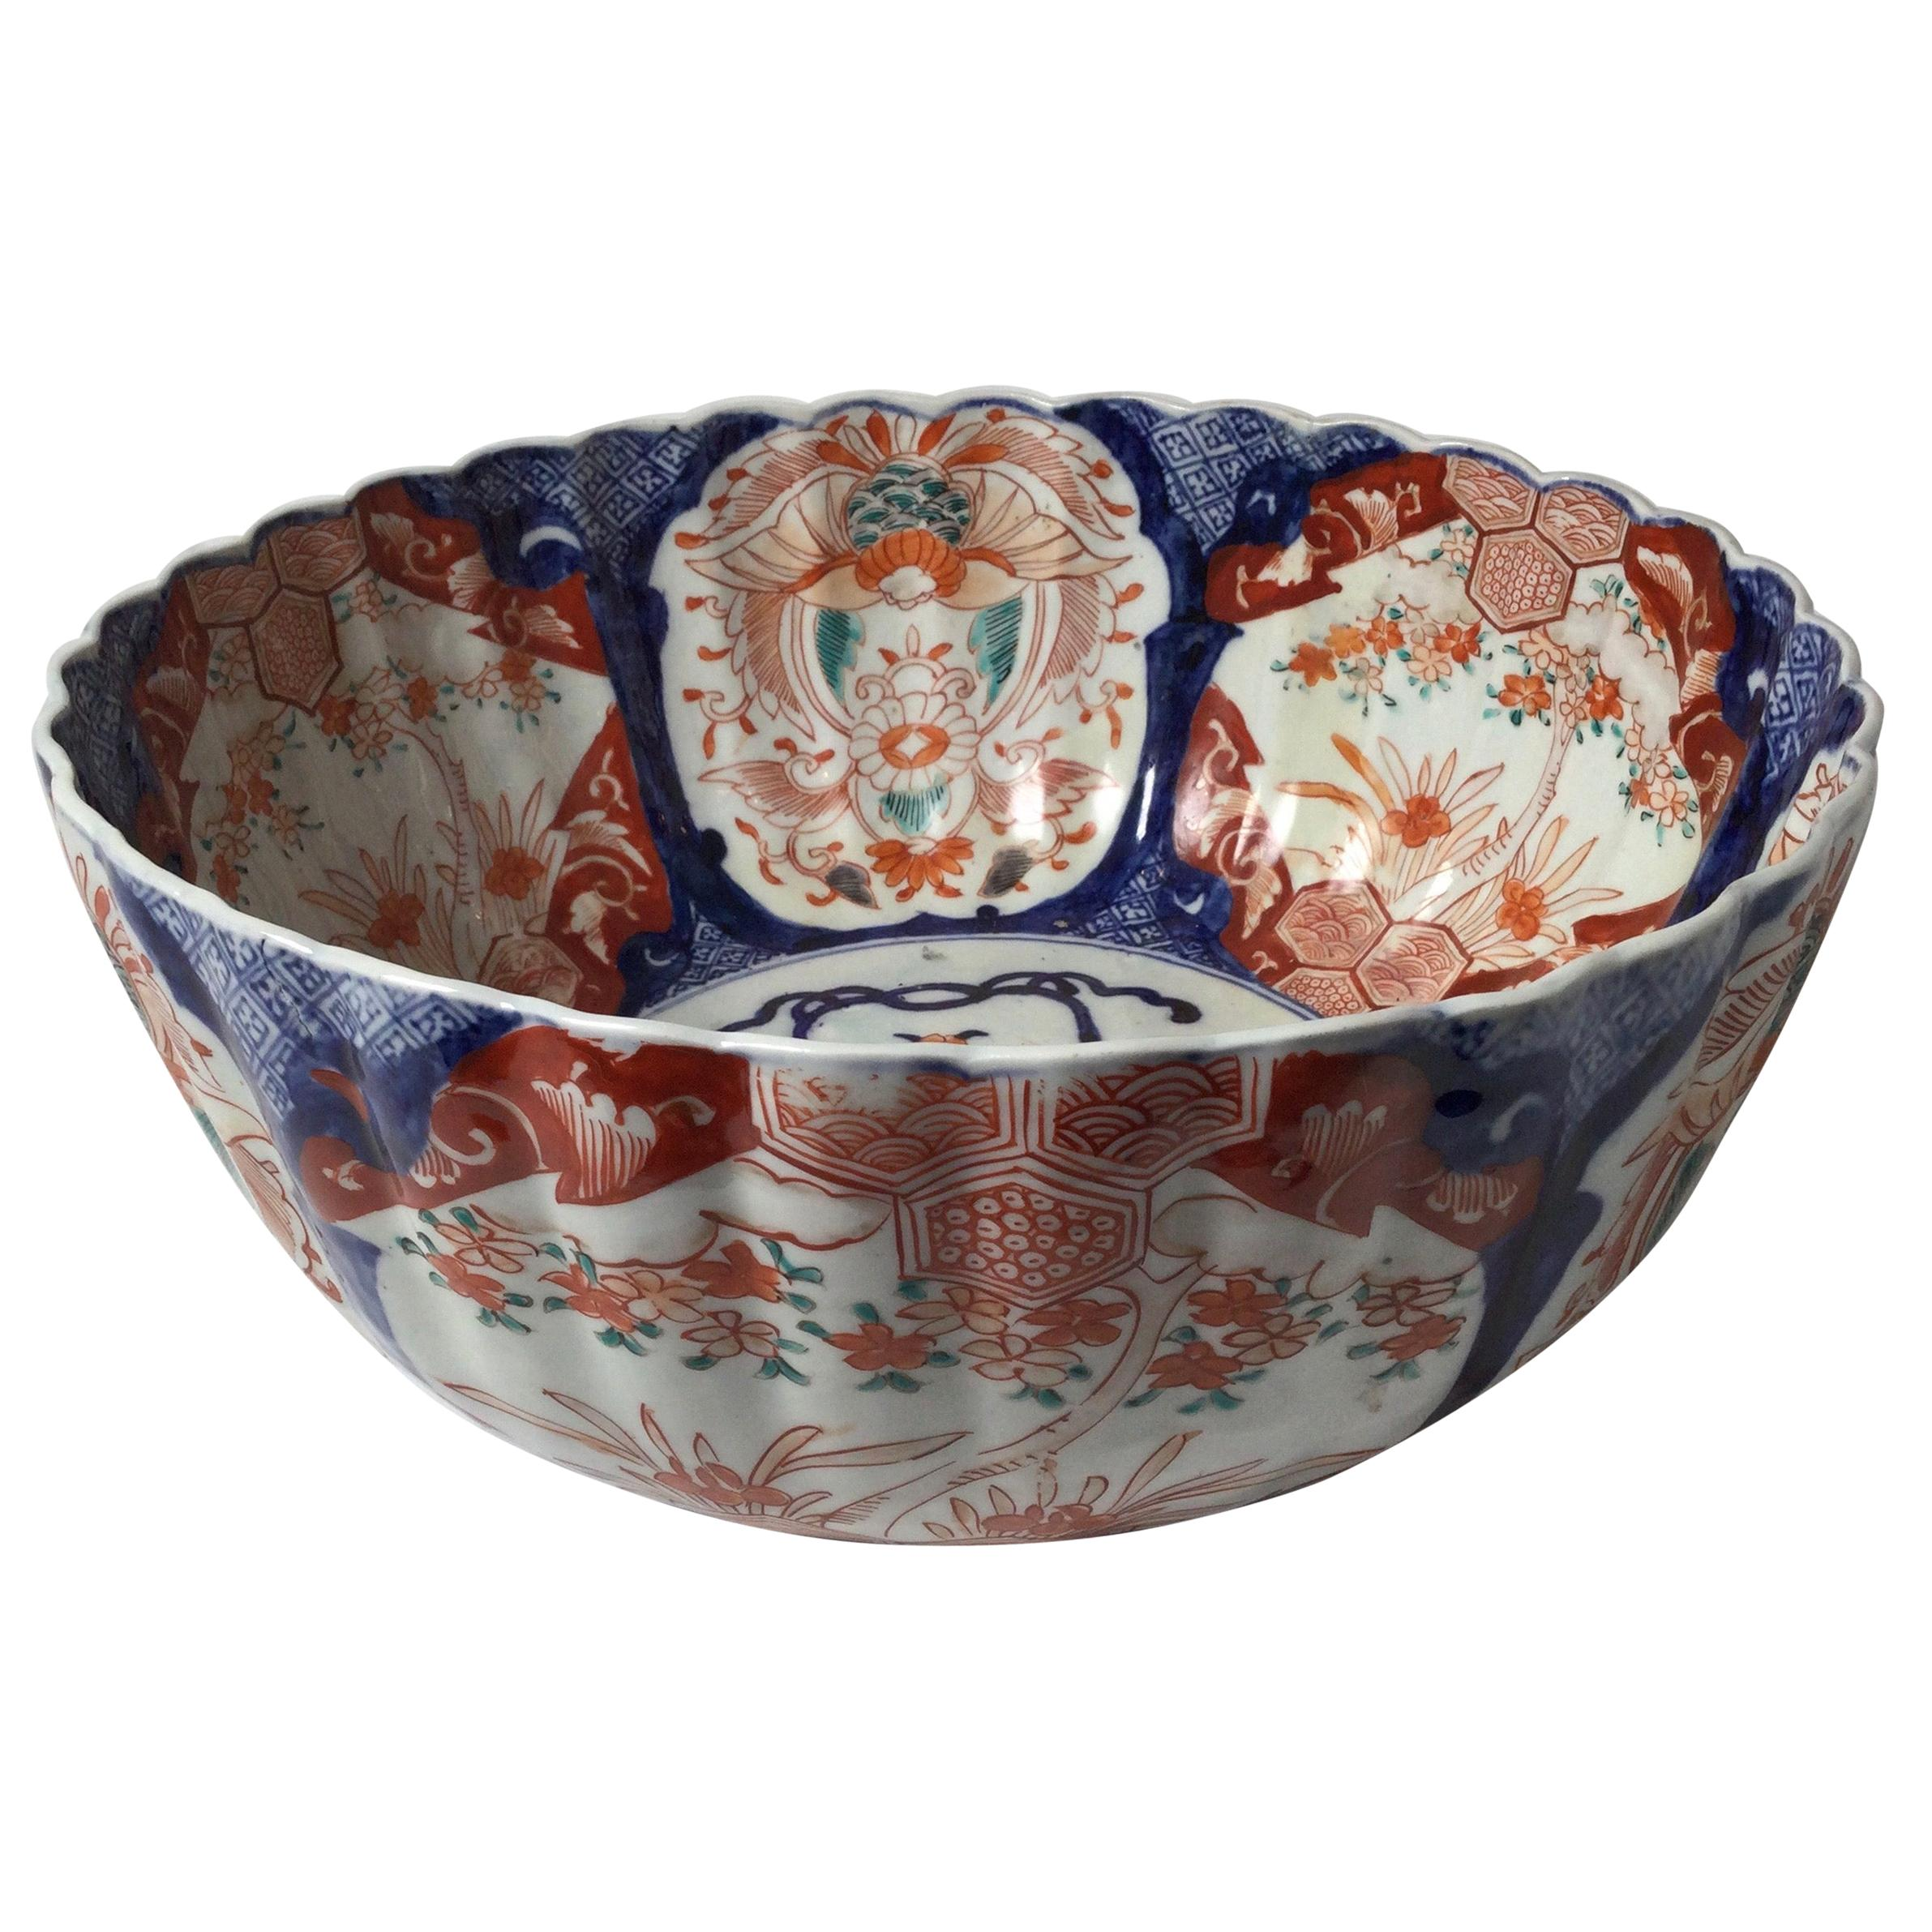 Antique Meiji Period Imari Porcelain Bowl